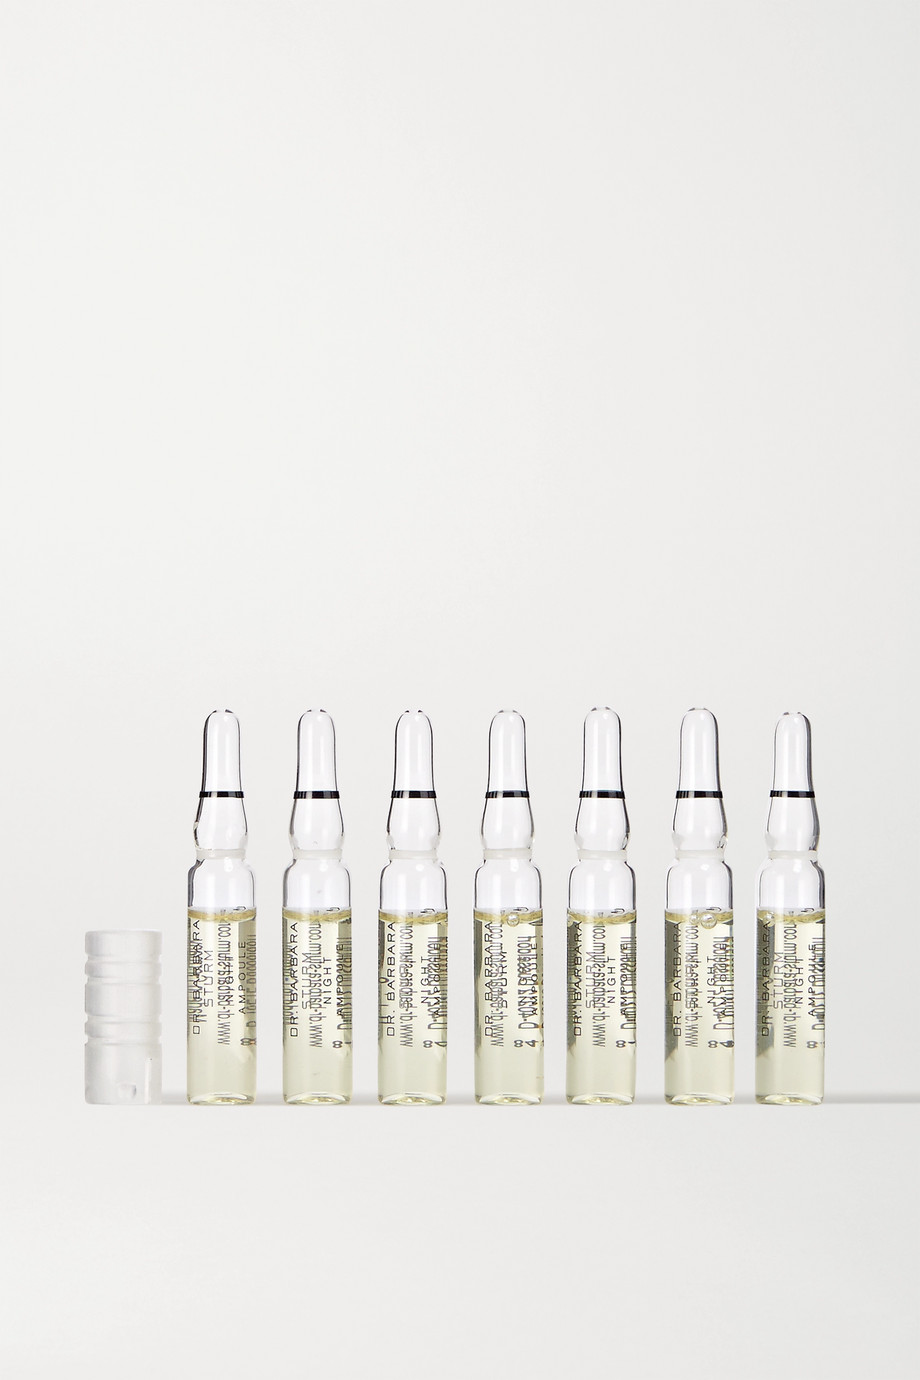 Dr. Barbara Sturm Ampoules Night, 7 x 2ml